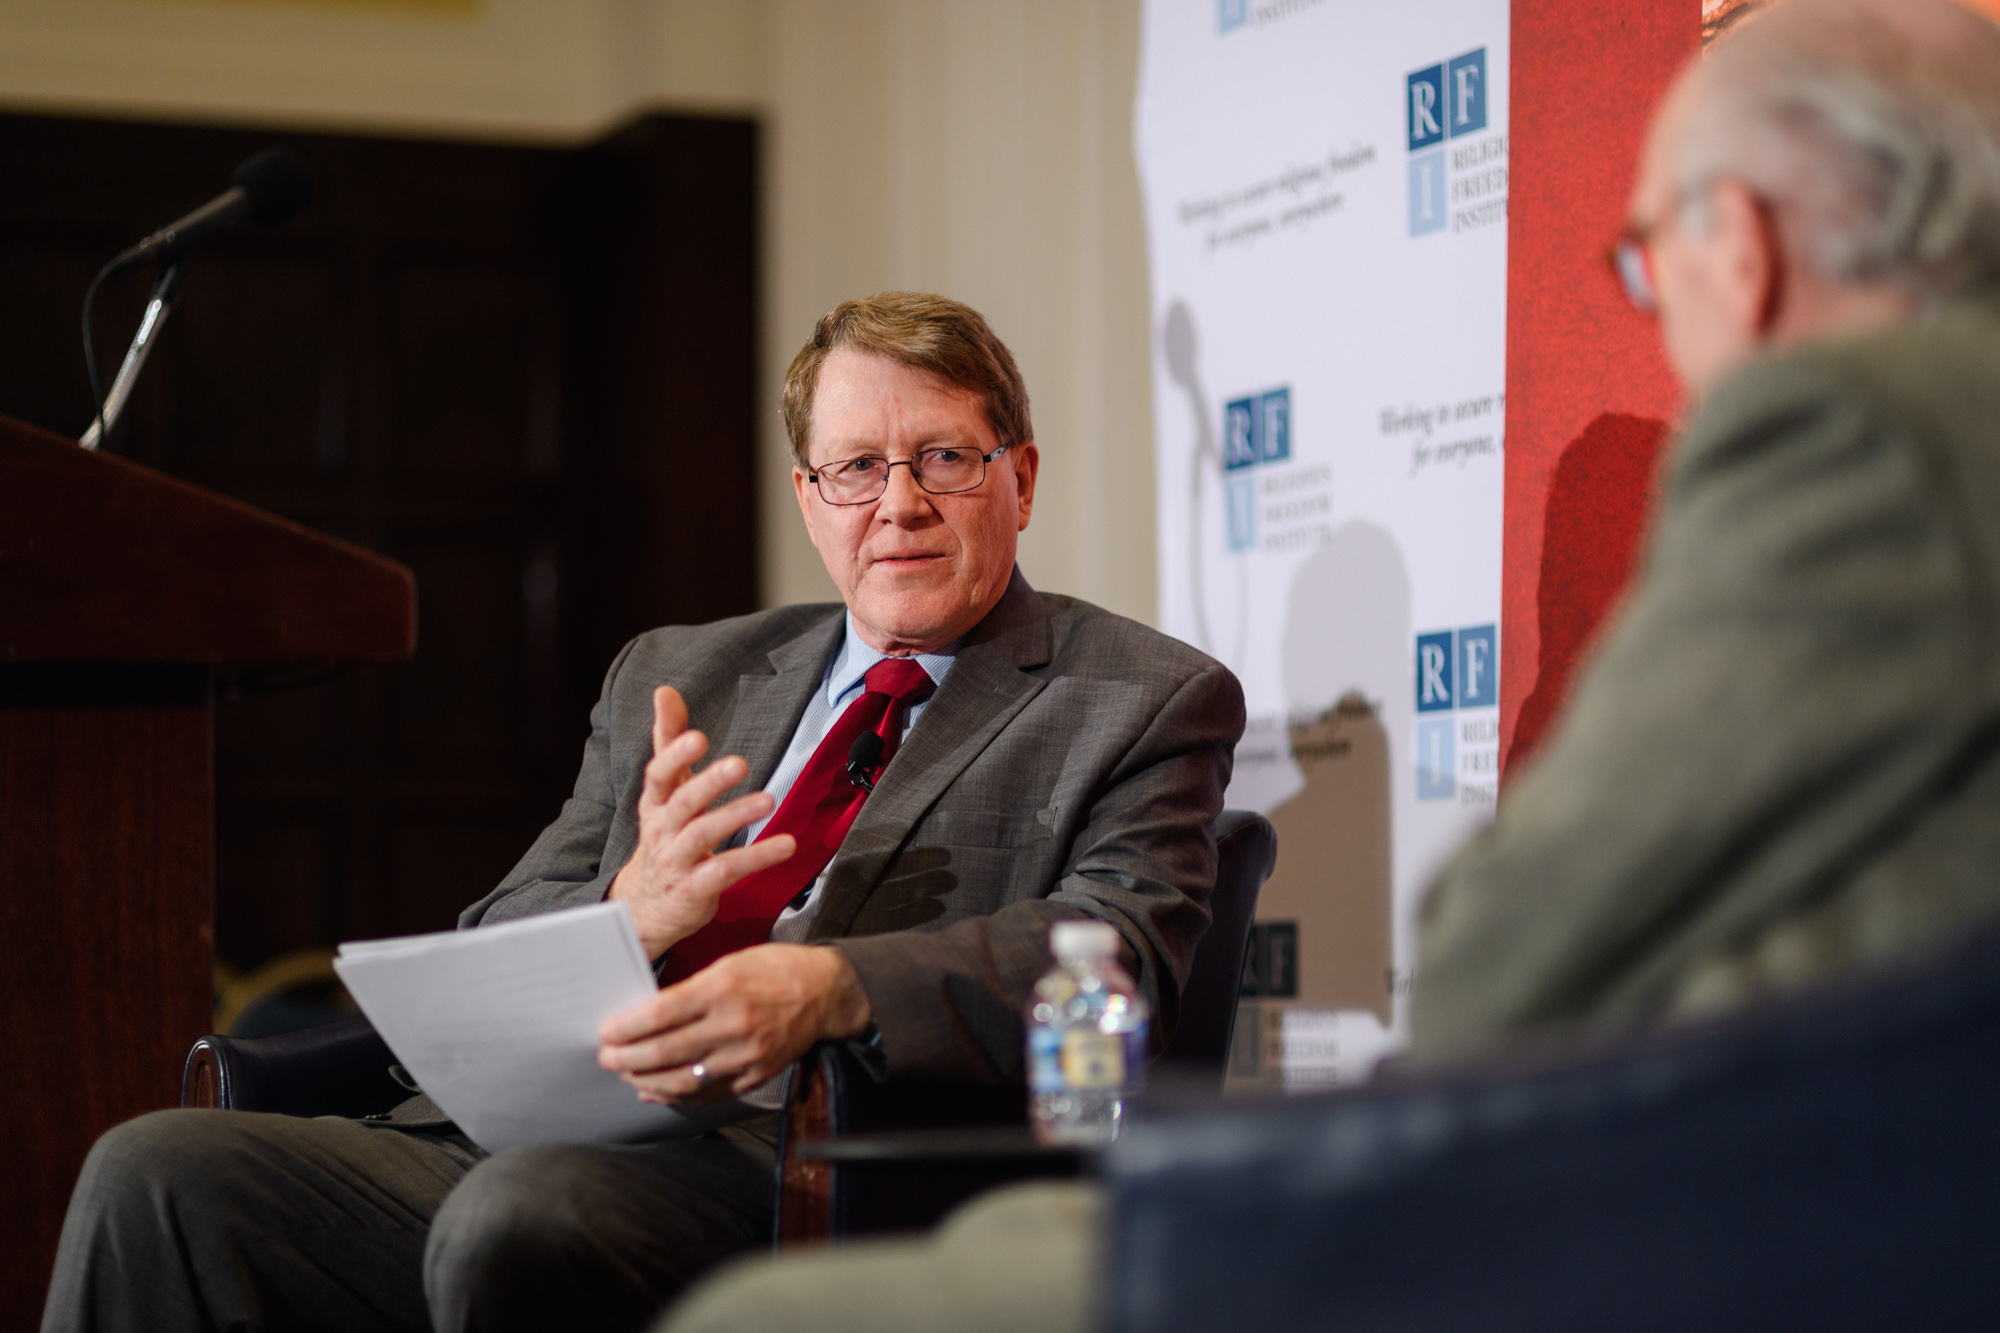 031 - February 12th 2019 Religious Freedom Institute at National Press Club - Photo Nathan Mitchell.jpg